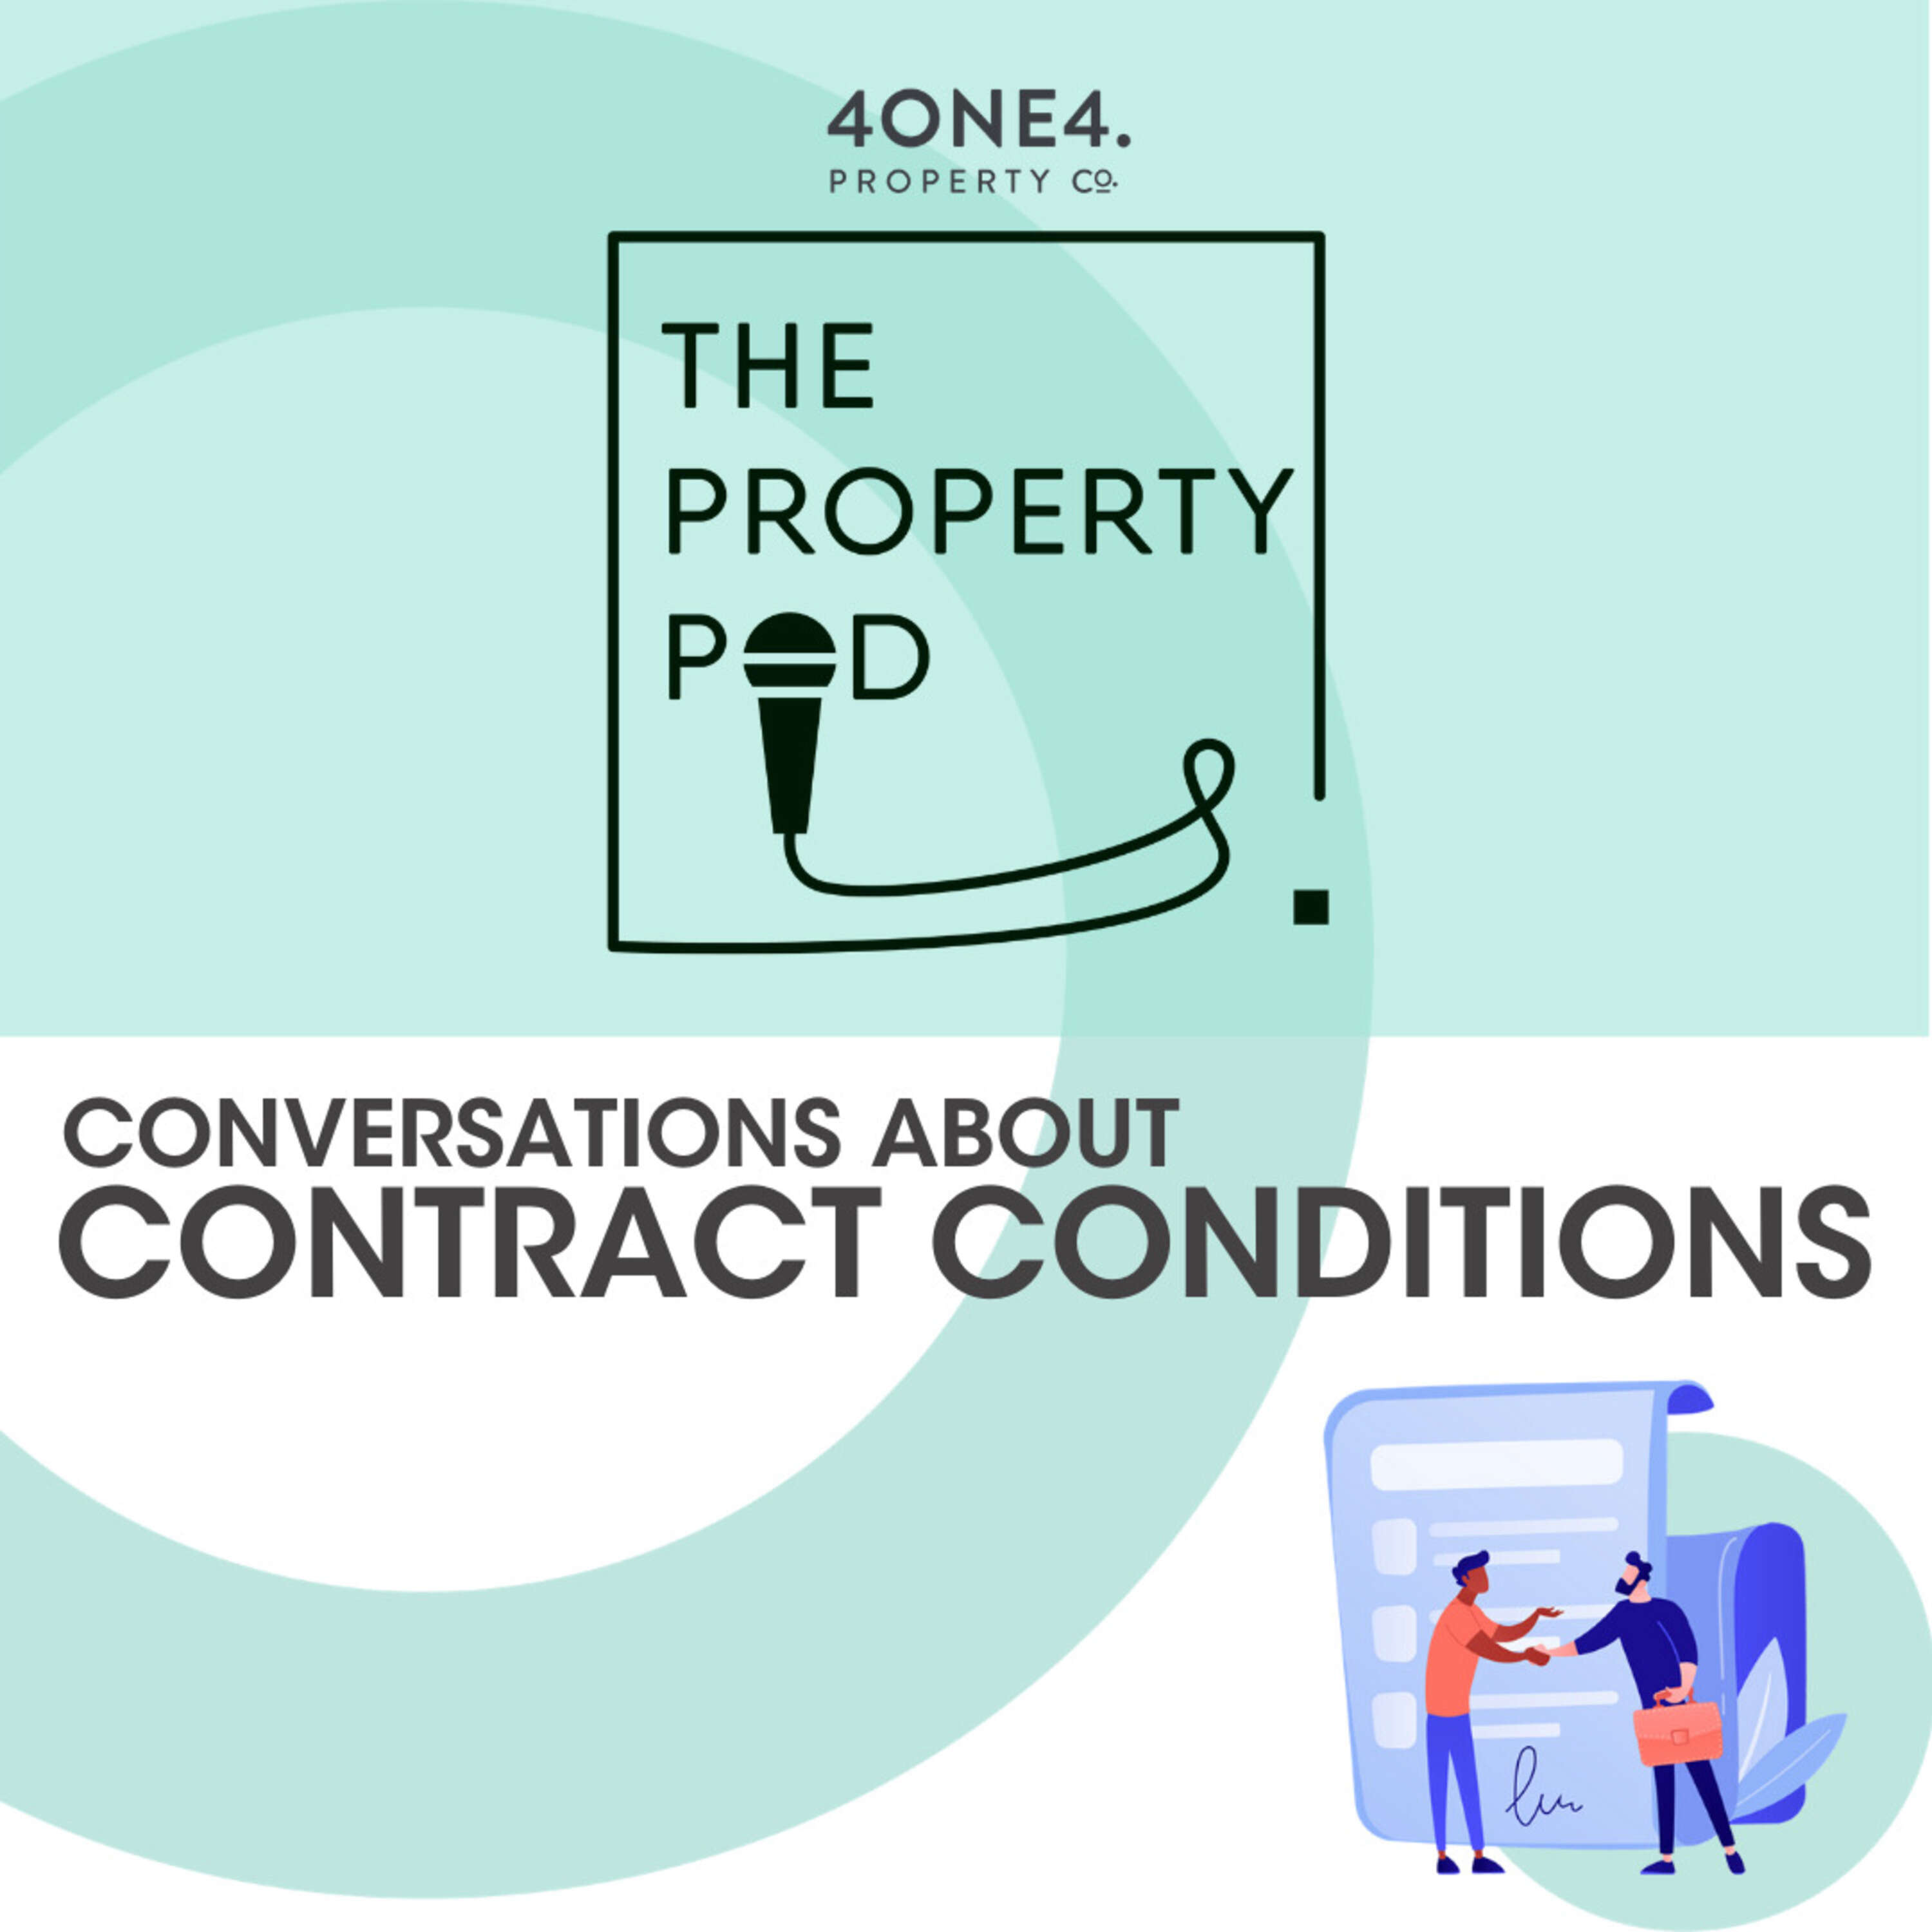 Conversations about Contract Conditions